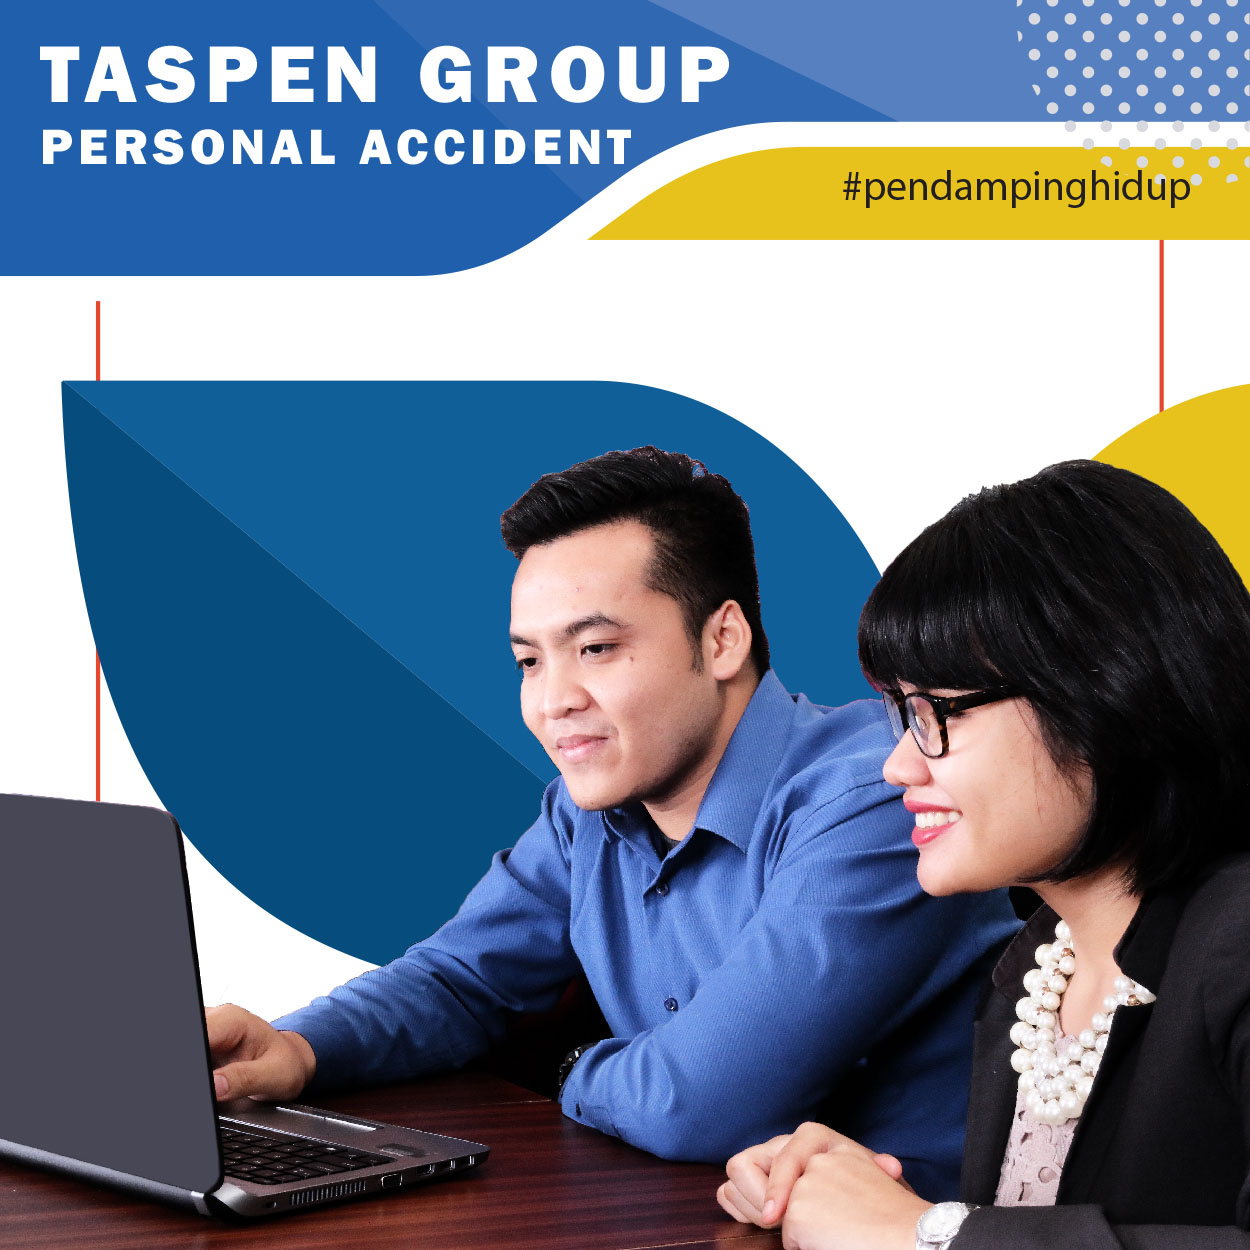 Taspen Group Personal Accident